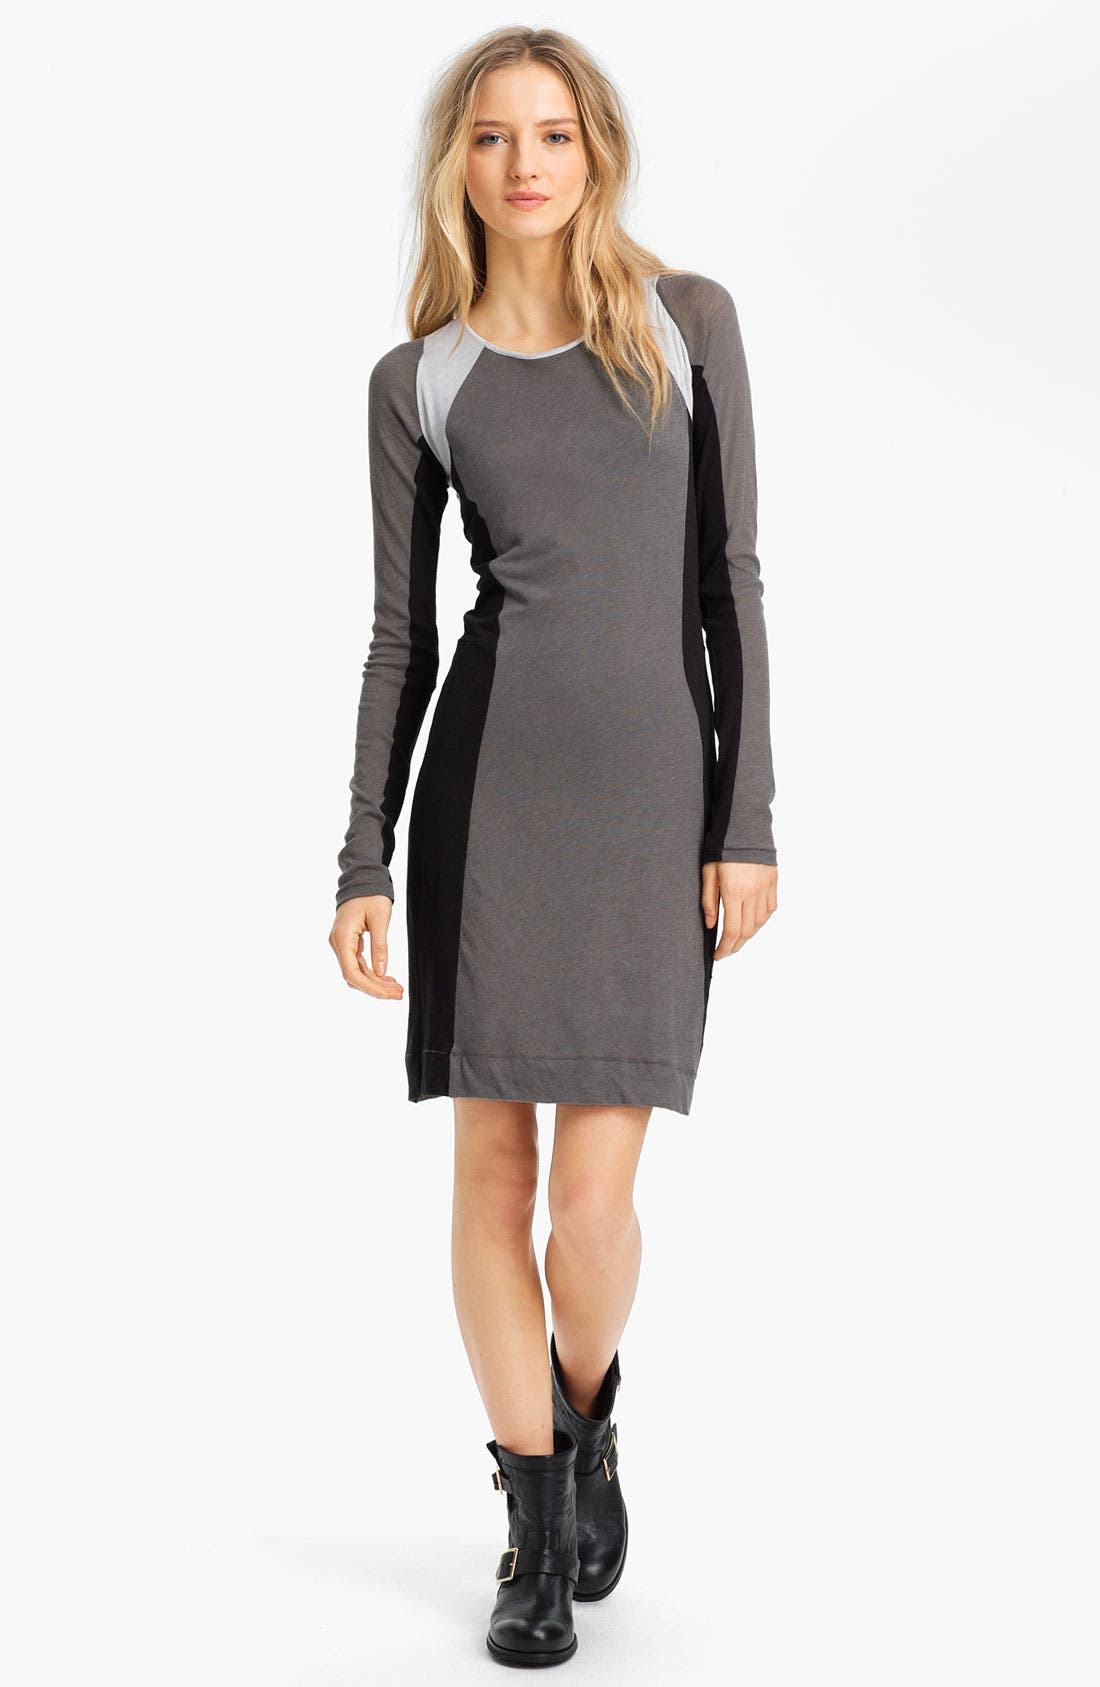 Alternate Image 1 Selected - rag & bone 'The Moto' Contrast Panel Dress